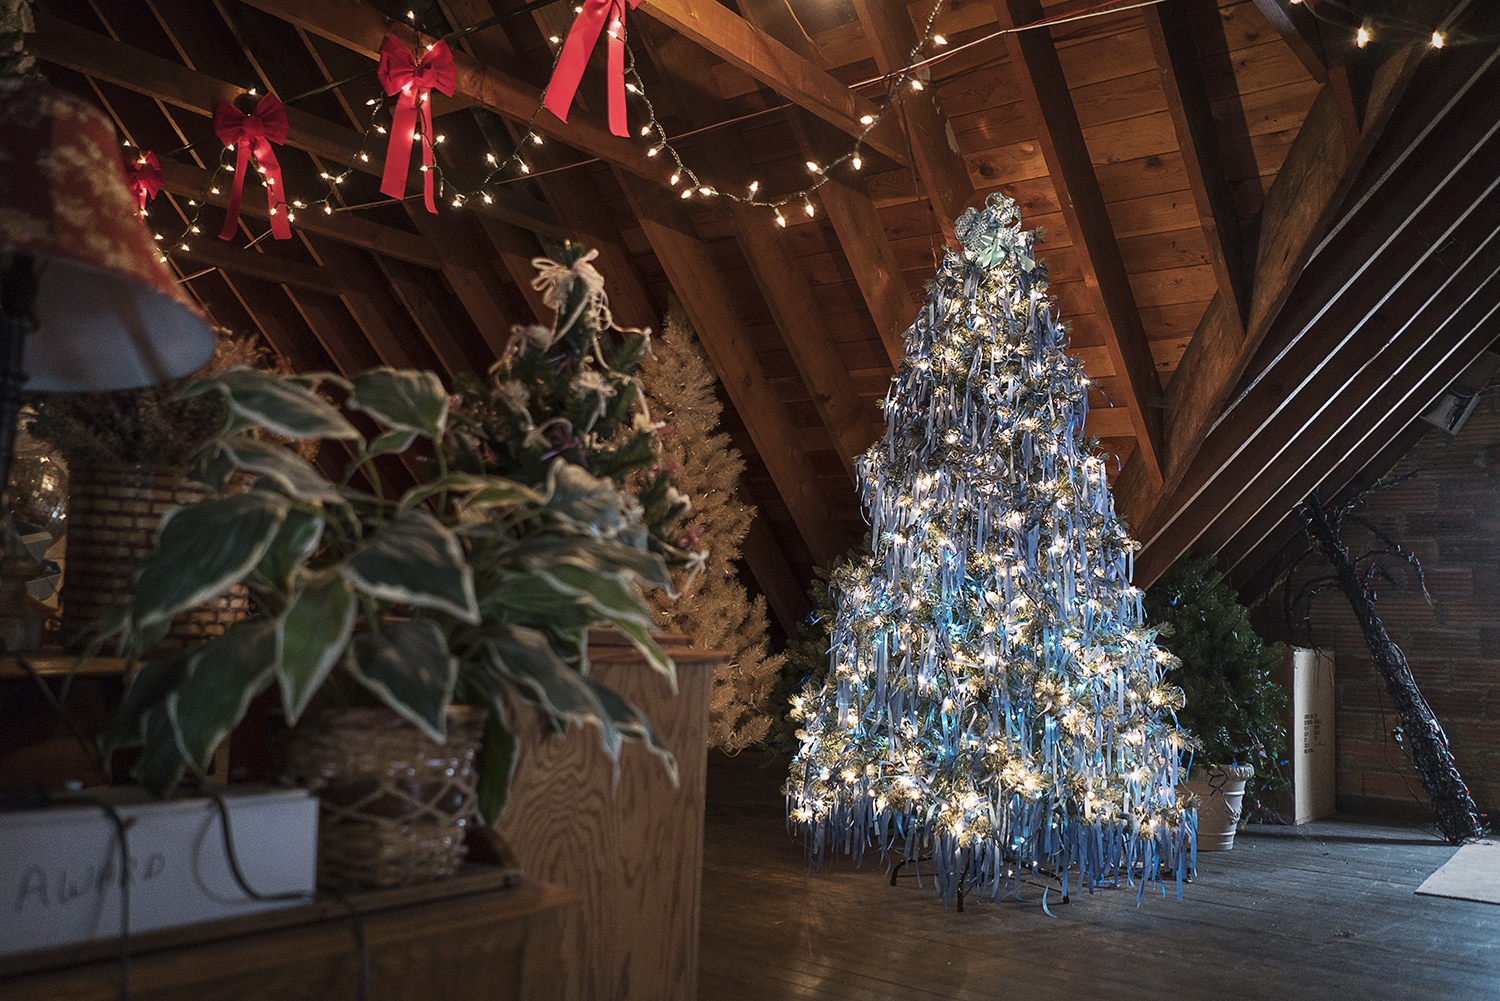 Flint, MI - Saturday, December 9, 2017: A tree adorned with 2,000 blue ribbons is illuminated in the attic of the Heddy home. Each ribbon on the tree represents a reported case of child abuse in the county for the year it was decorated. Each year the Heddy's generate, on average, $15,000 to donate to charities and college funds for youth and families in need.Tim Galloway for FlintSide